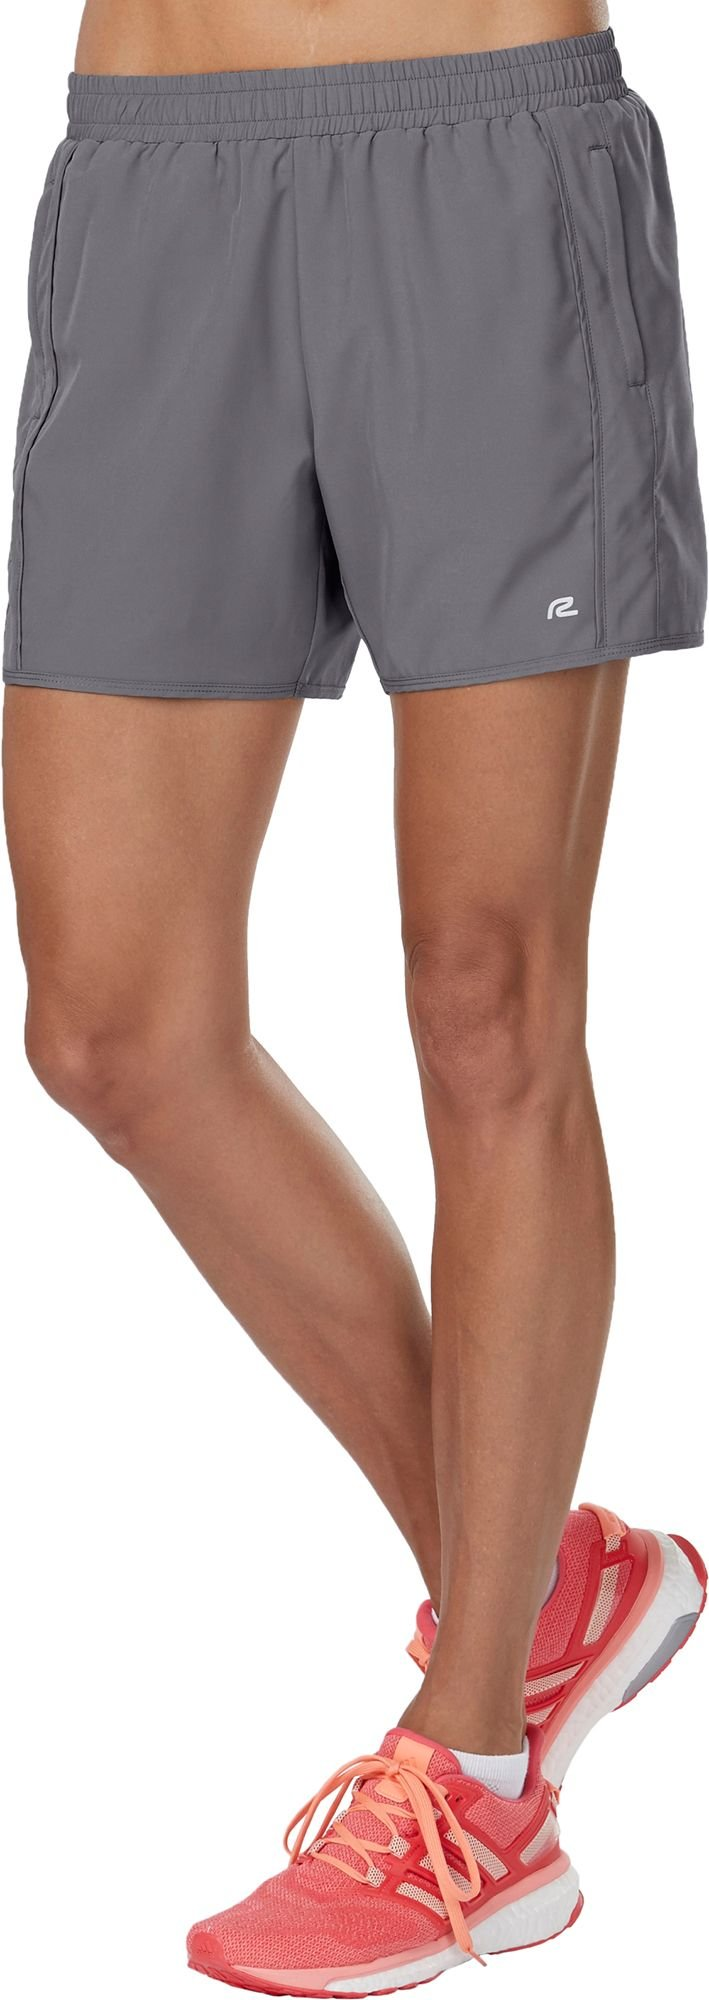 R-Gear Women's High Five Running Shorts 5-inch Length | Multiple Pockets with Zippers, Inner Brief Liner, Breathable Fabric, Grey Mist, XS